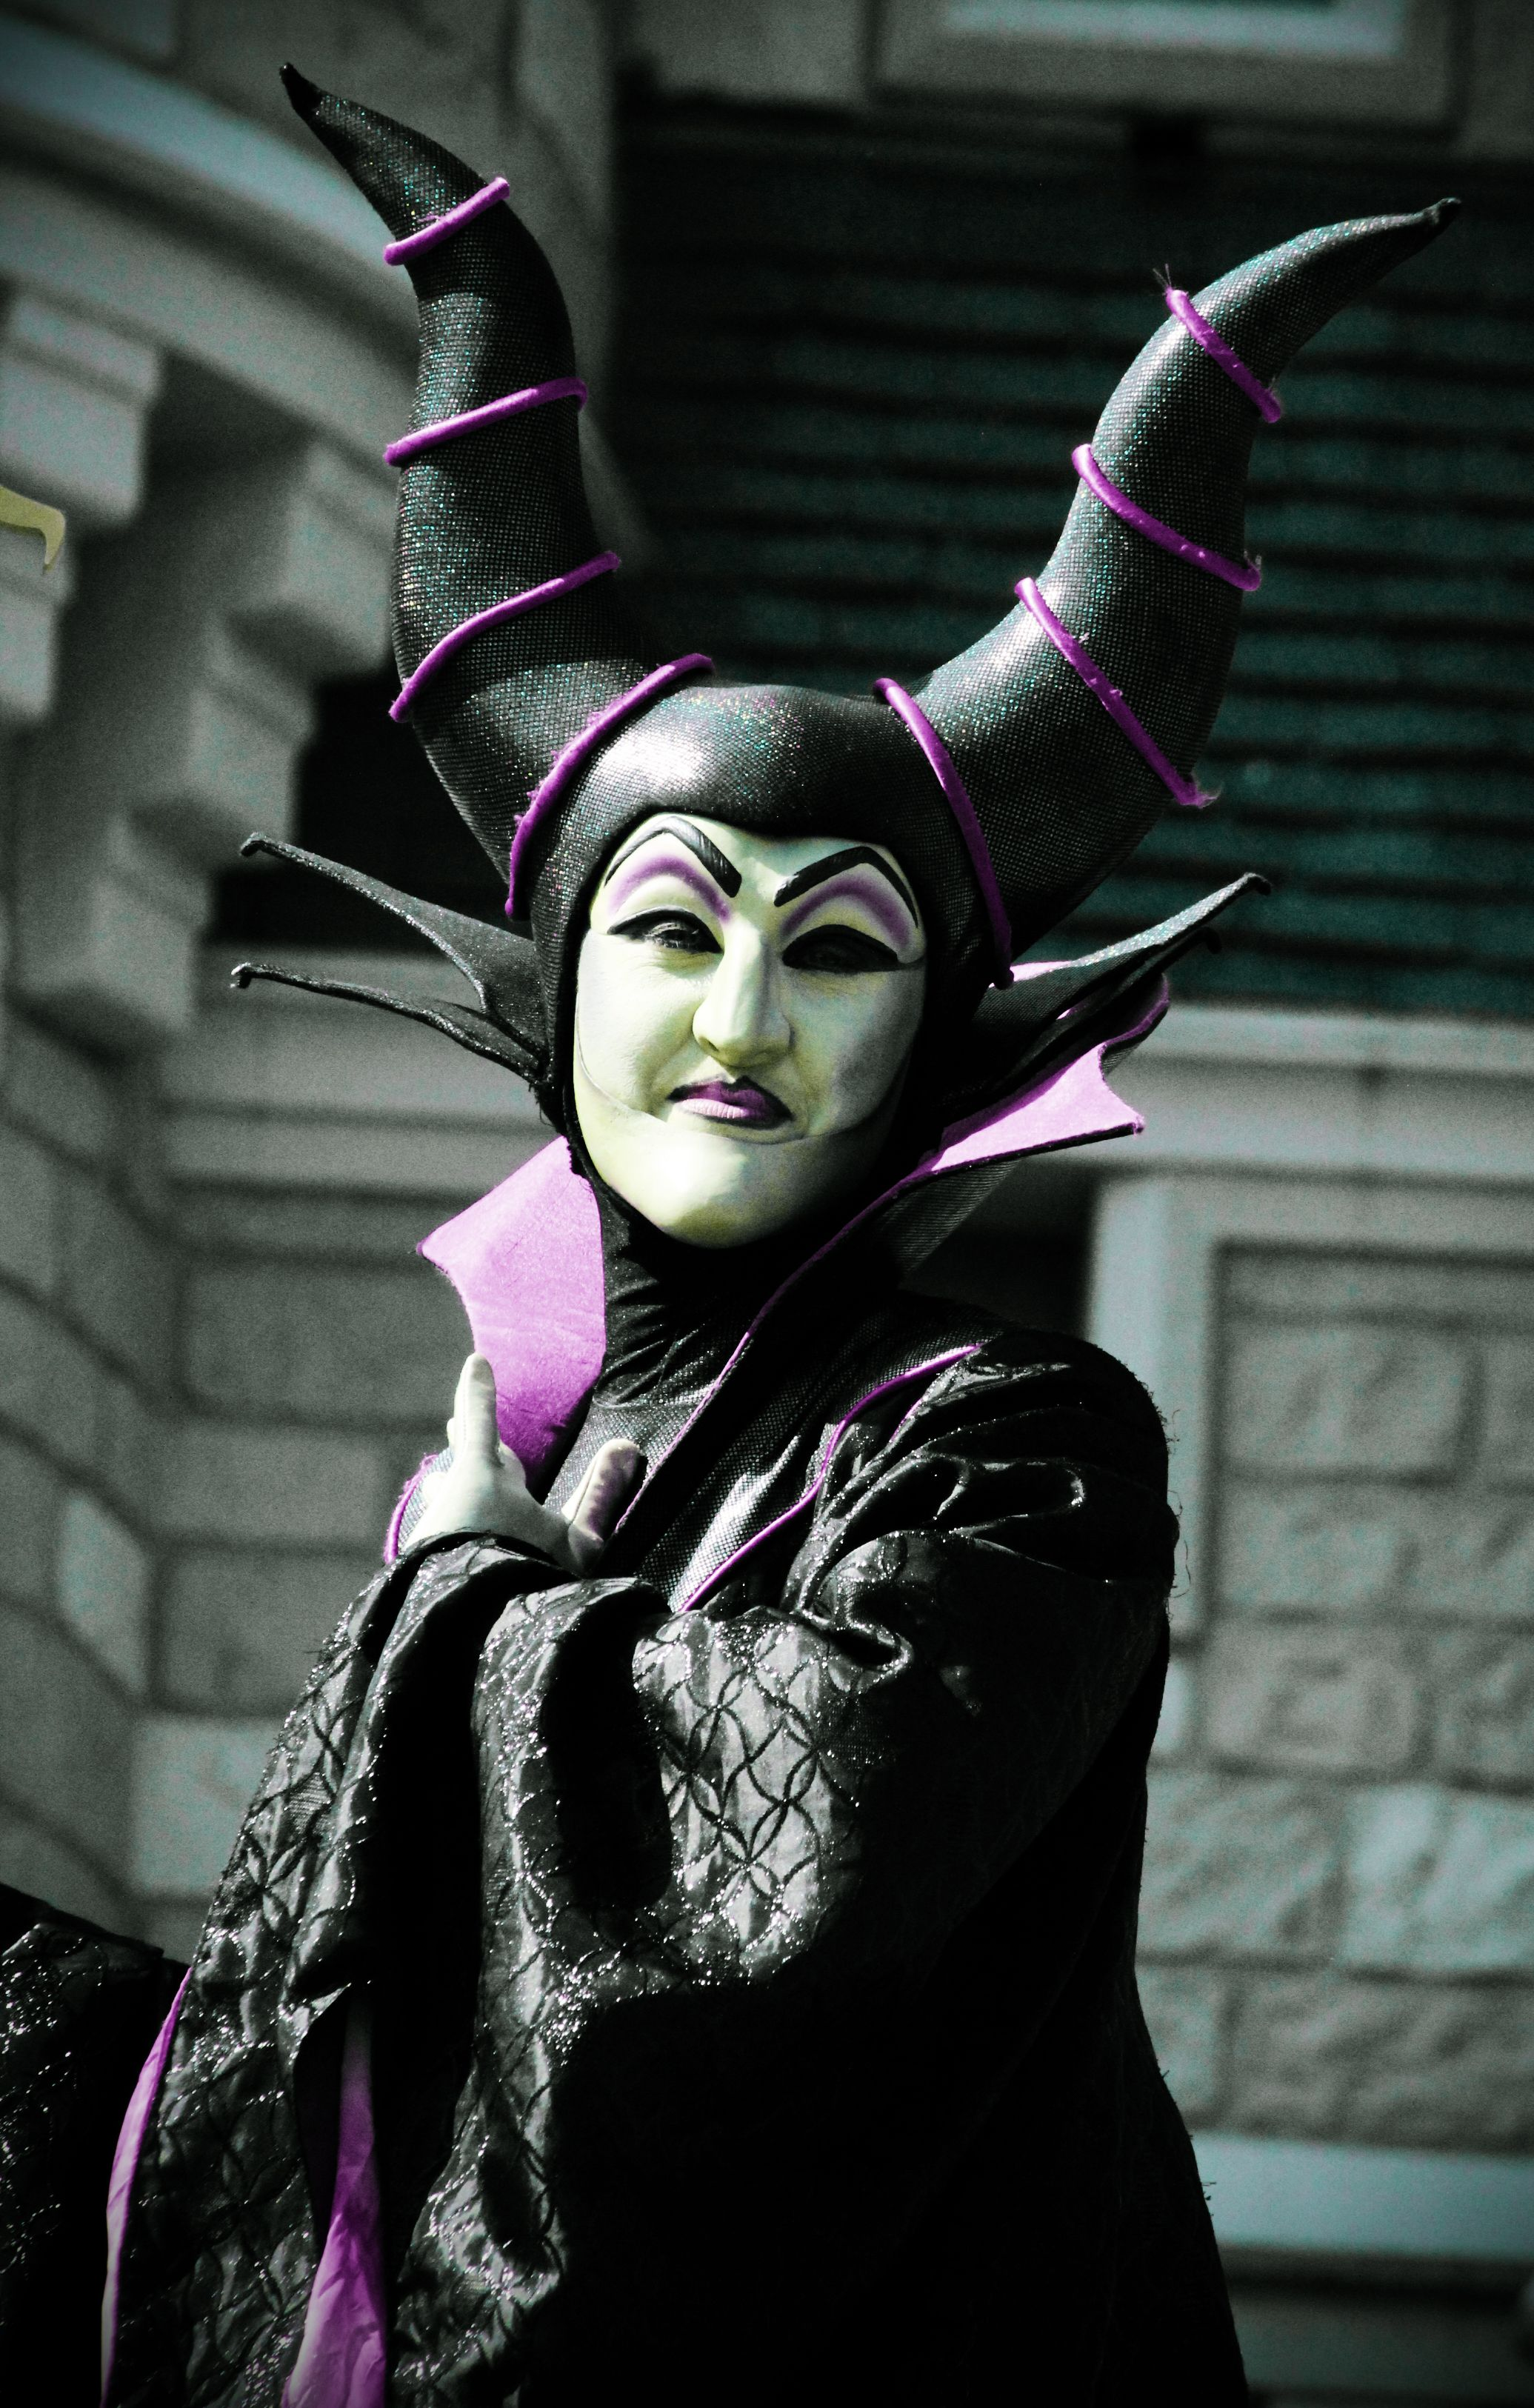 WDW – Maleficent | For the mom | Disney costumes, Maleficent